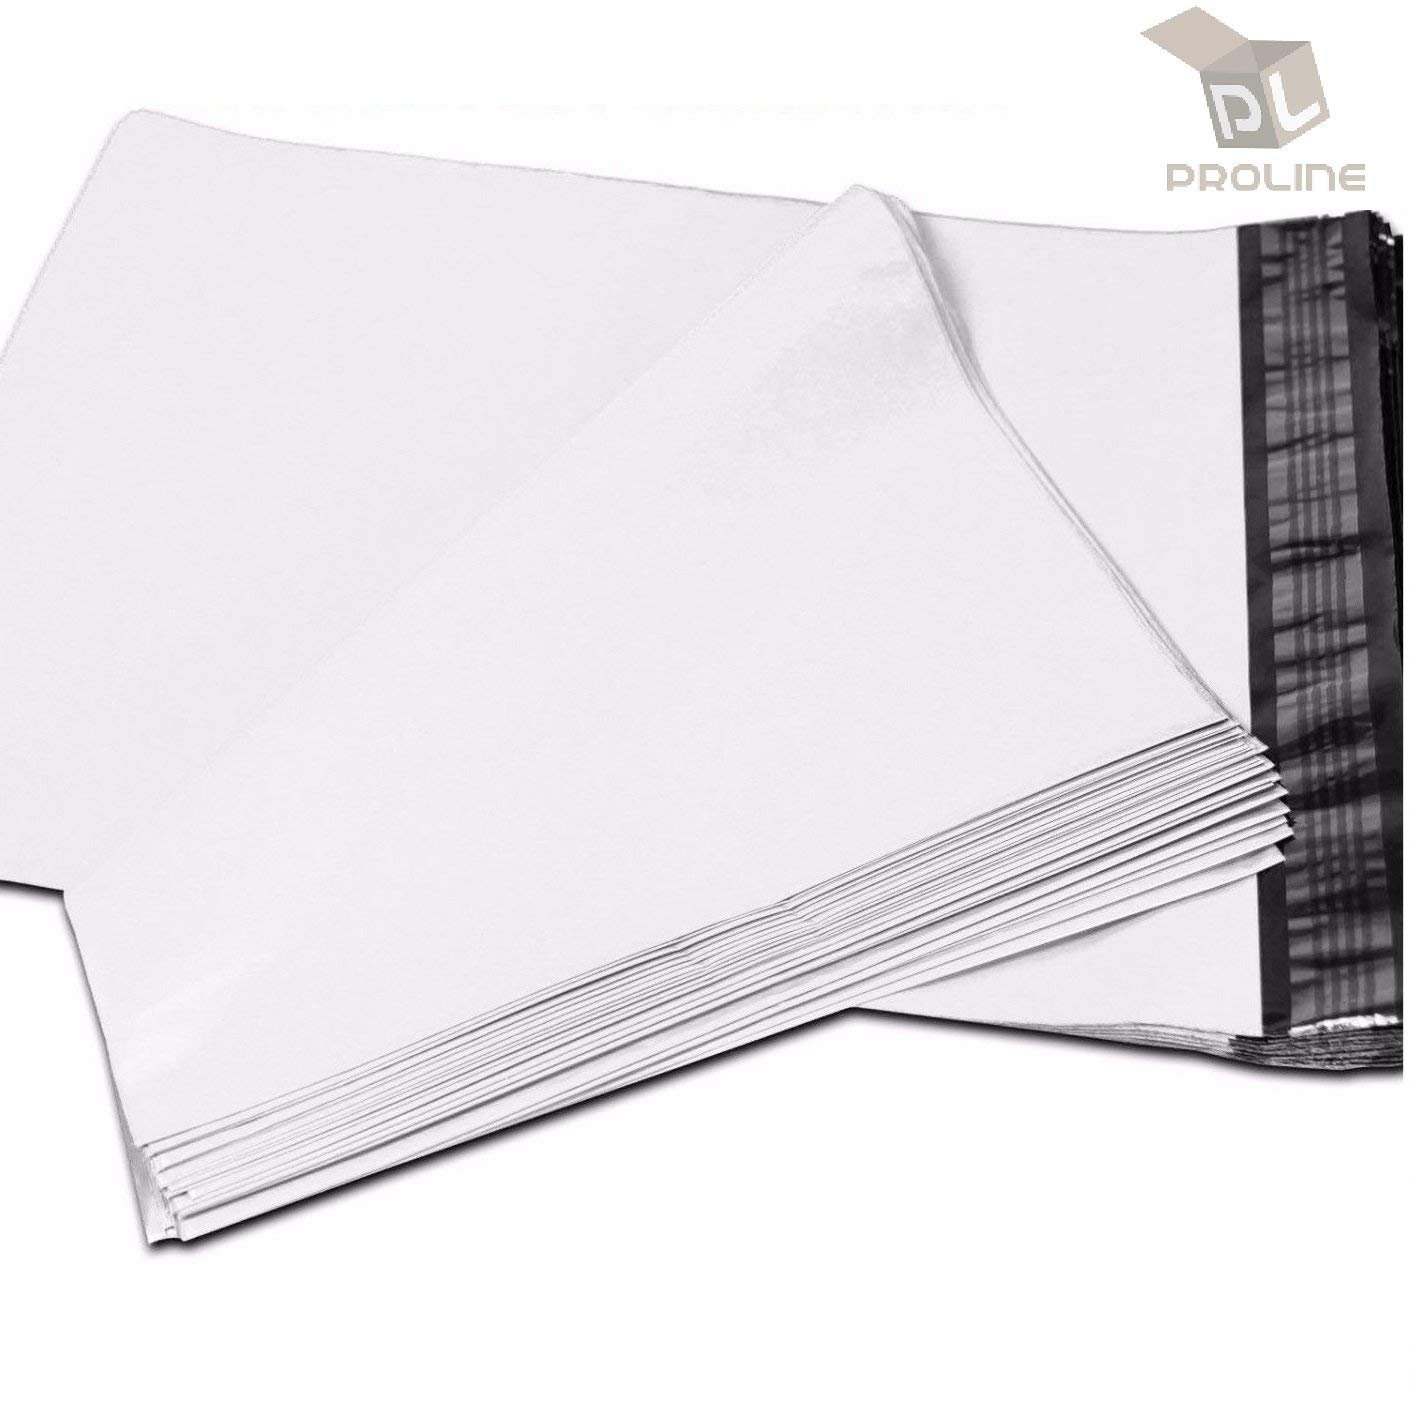 19 x 24 inch ProLine Packaging Supplies White Poly Mailers Self-Sealing Shipping Envelopes Plastic Mailing Bags 2.5 Mil Thickness 19''x24'' (100)